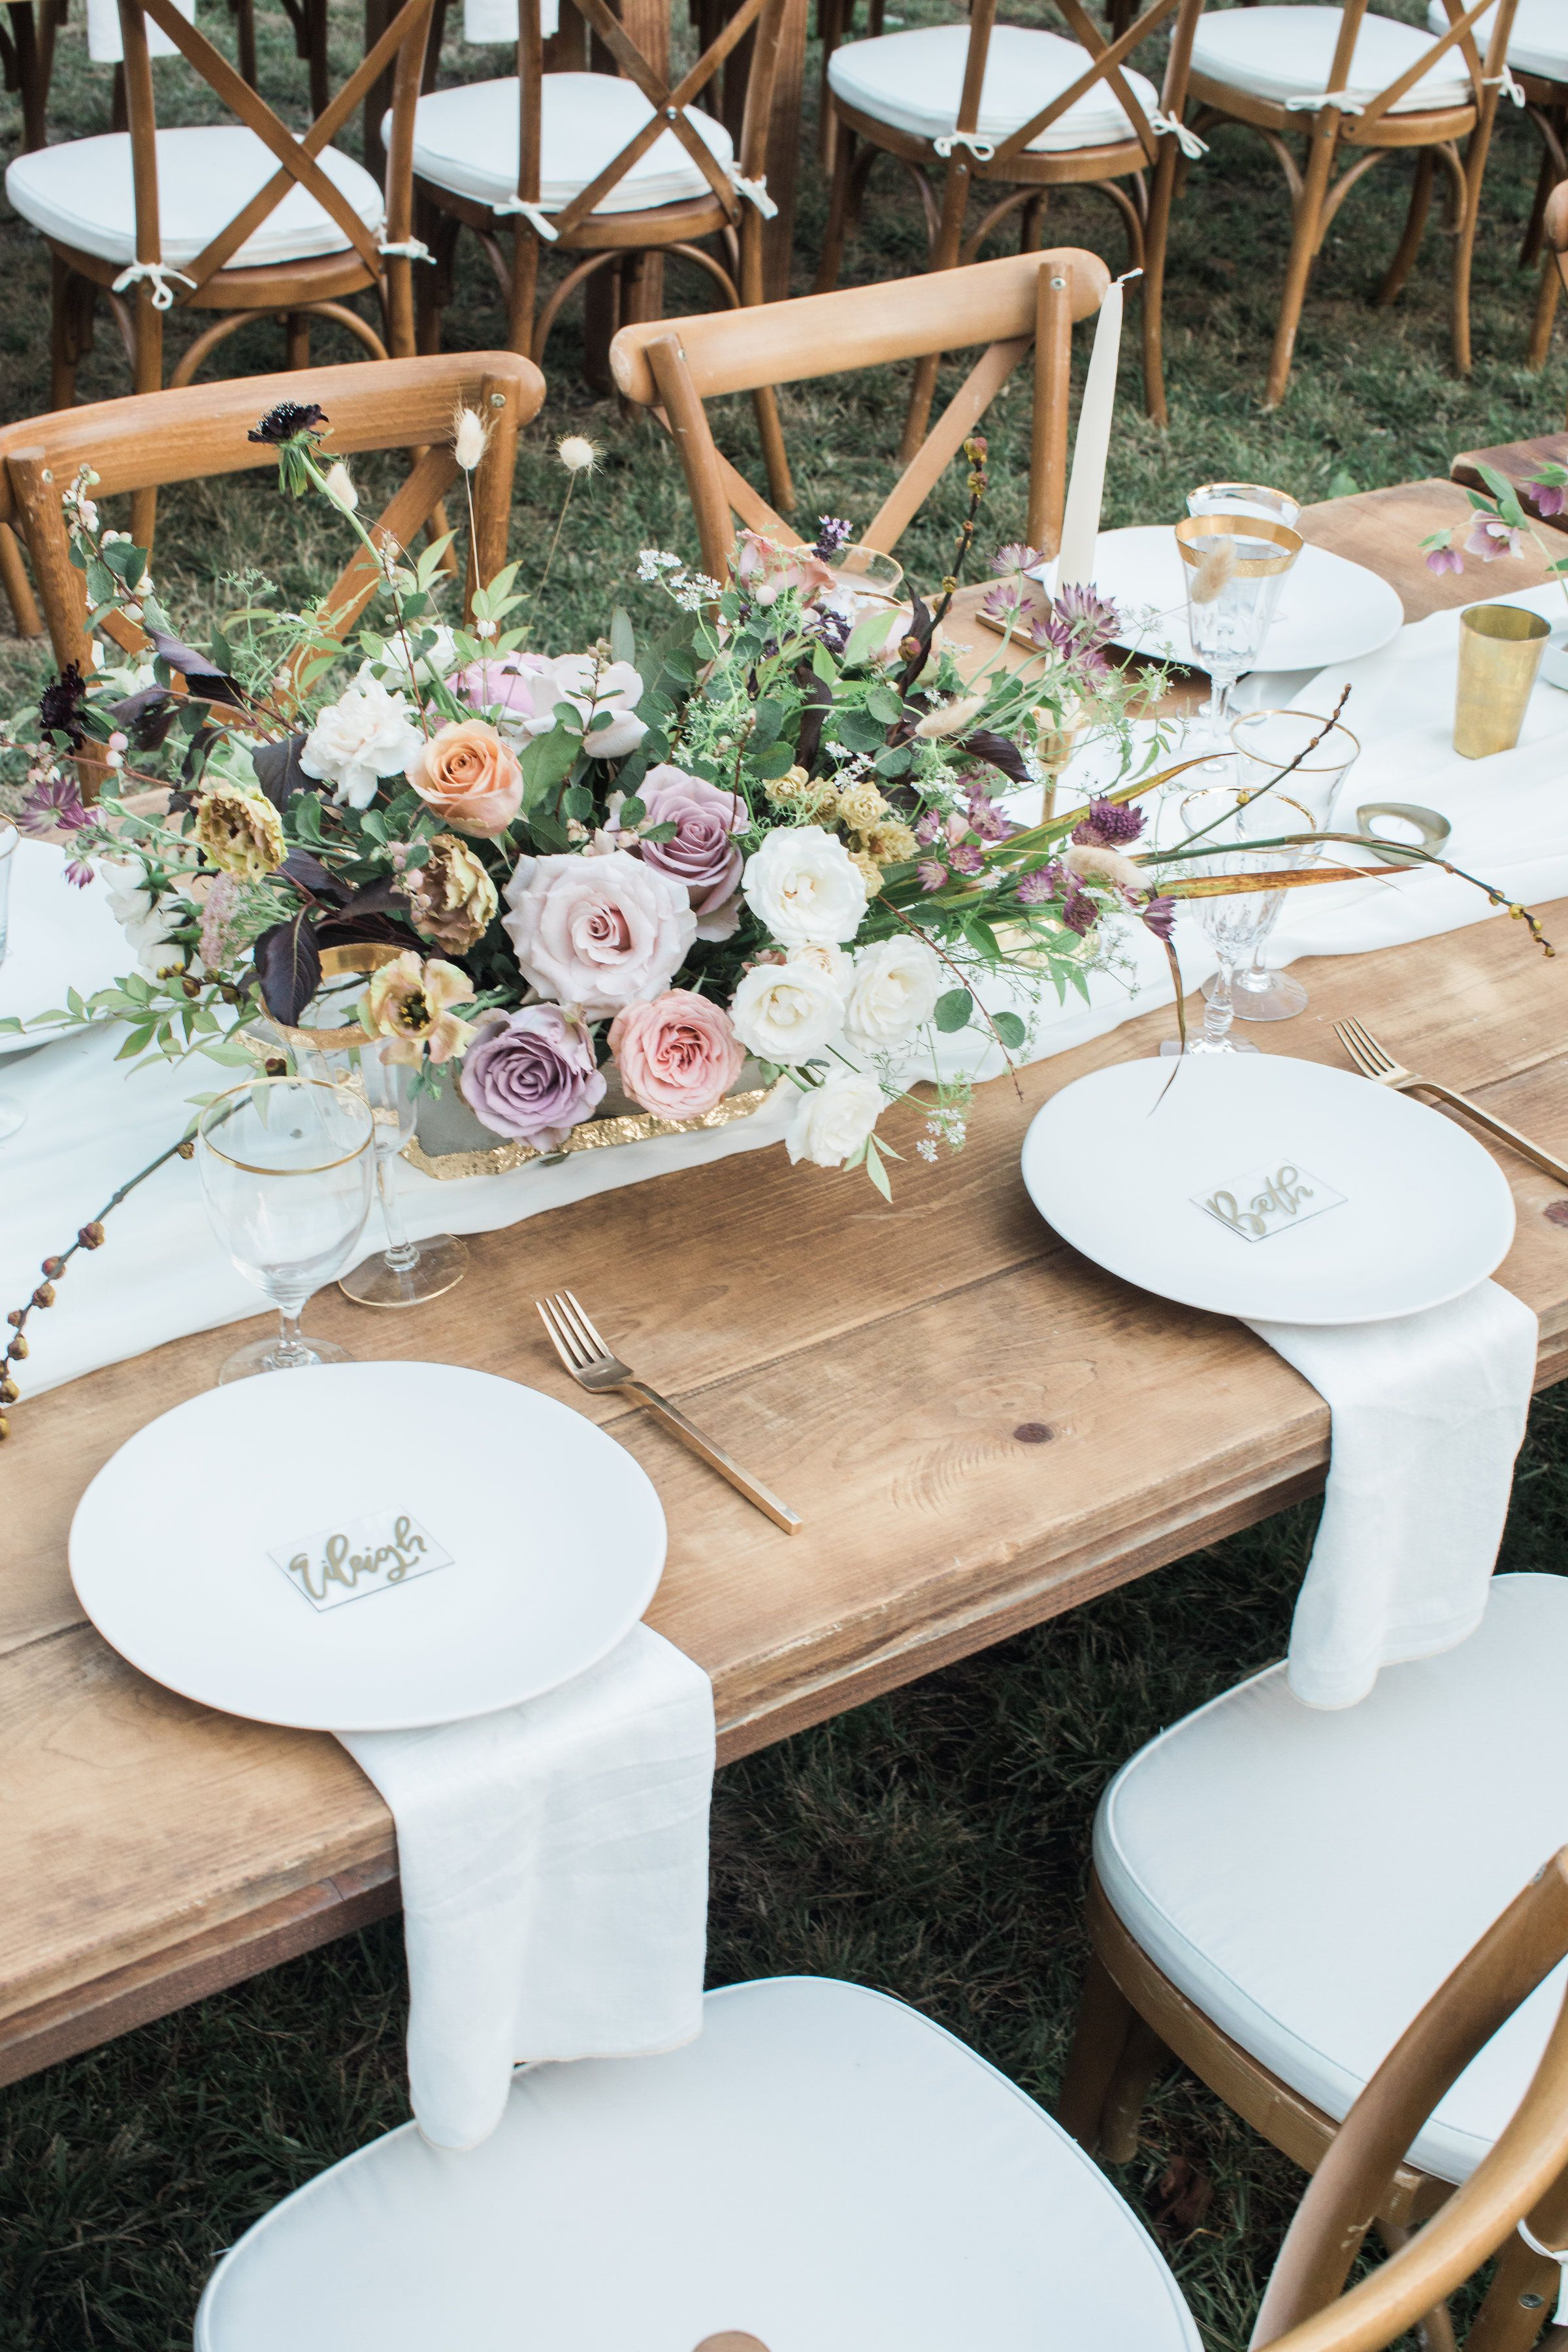 Farm Tables And More San Diego Table Rentals San Diego Wedding Rentals Wedding Table Decorations Wedding Southern California Wedding Reception Decorations